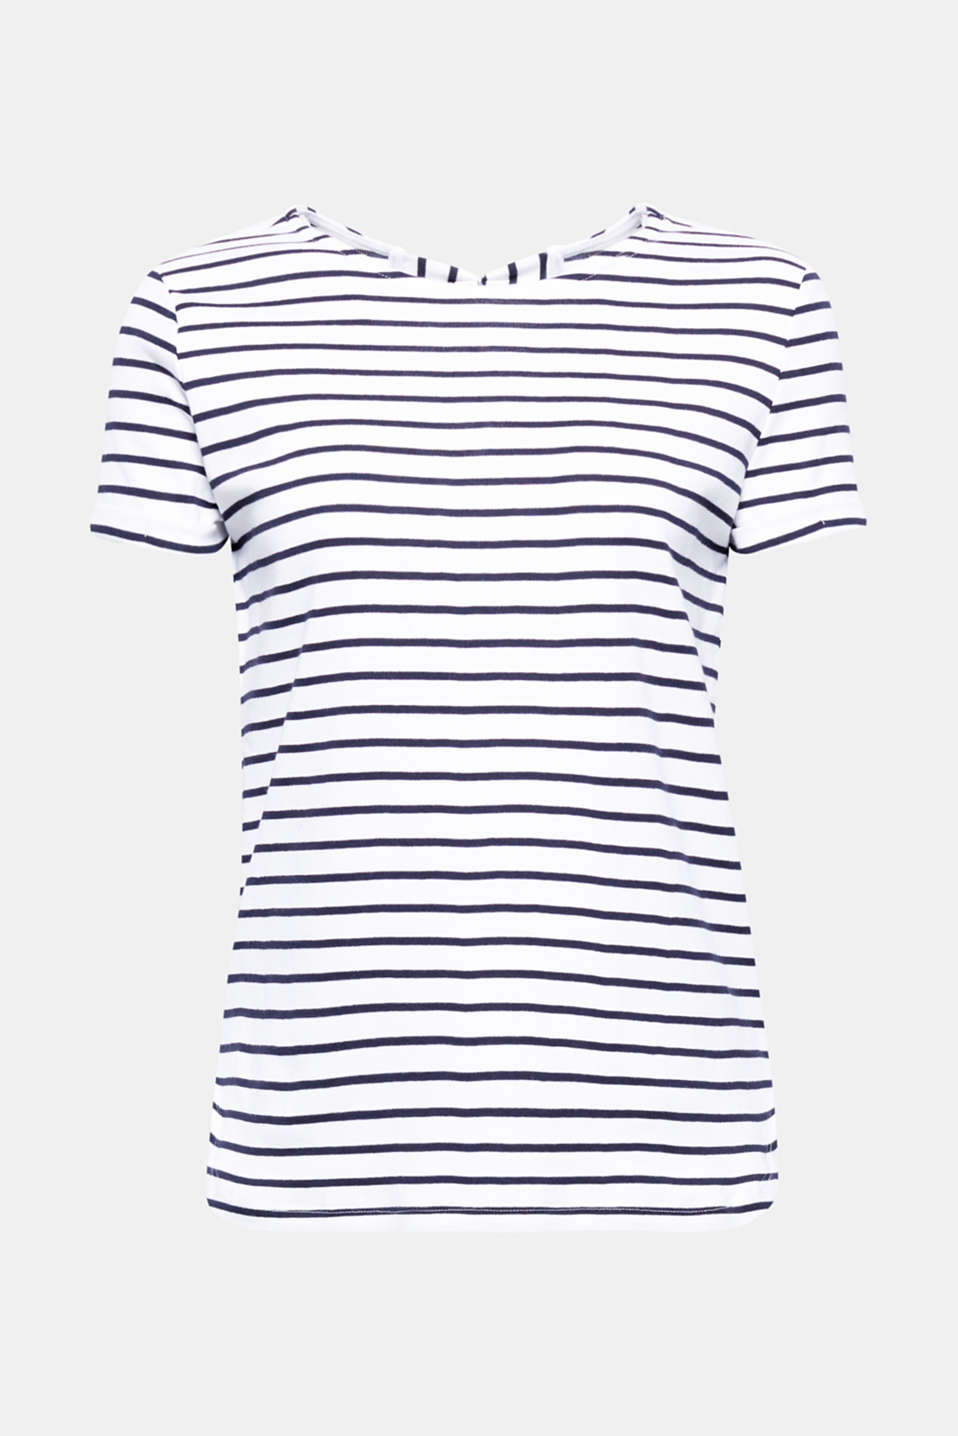 The back of this classically striped T-shirt is sure to catch the eye with its beautiful bow decorations. The finely ribbed cotton jersey is exceptionally comfortable to wear.